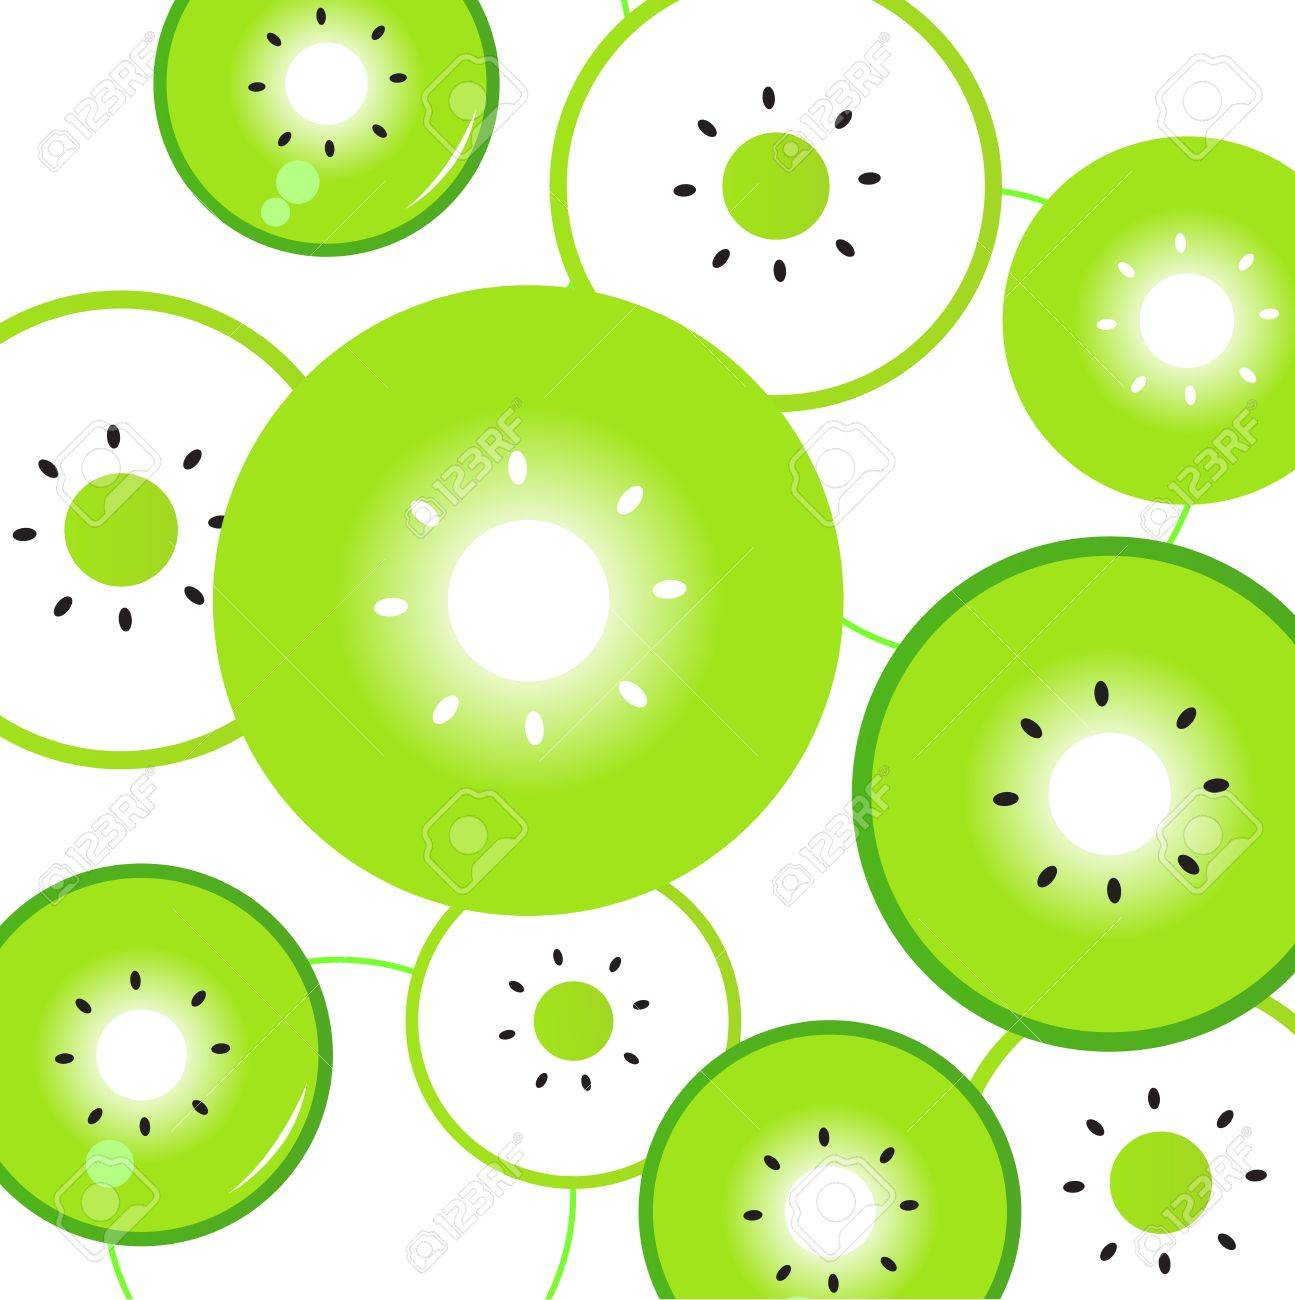 Kiwi Slice Drawing Fresh Stylized Fruit Pattern